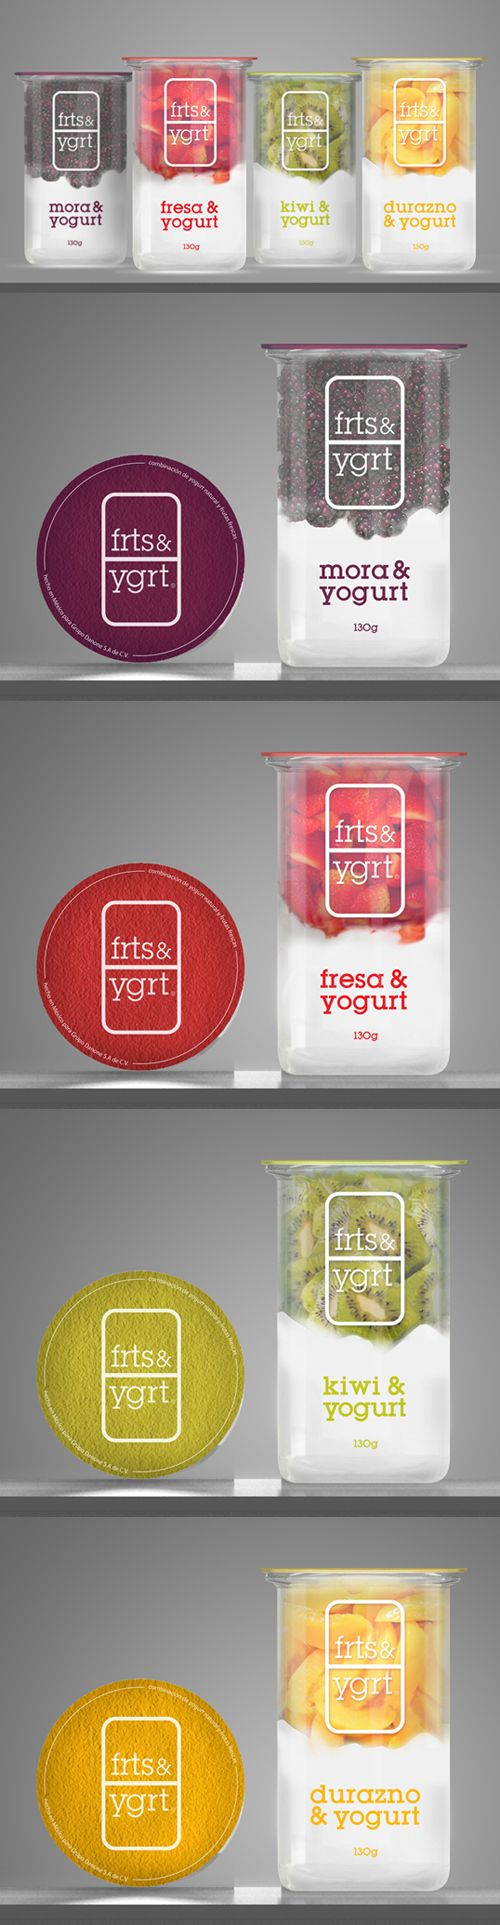 Fruit Yogurt Designed by Mika Kañive. I like the clear packaging to show off the fruit and yogurt inside.